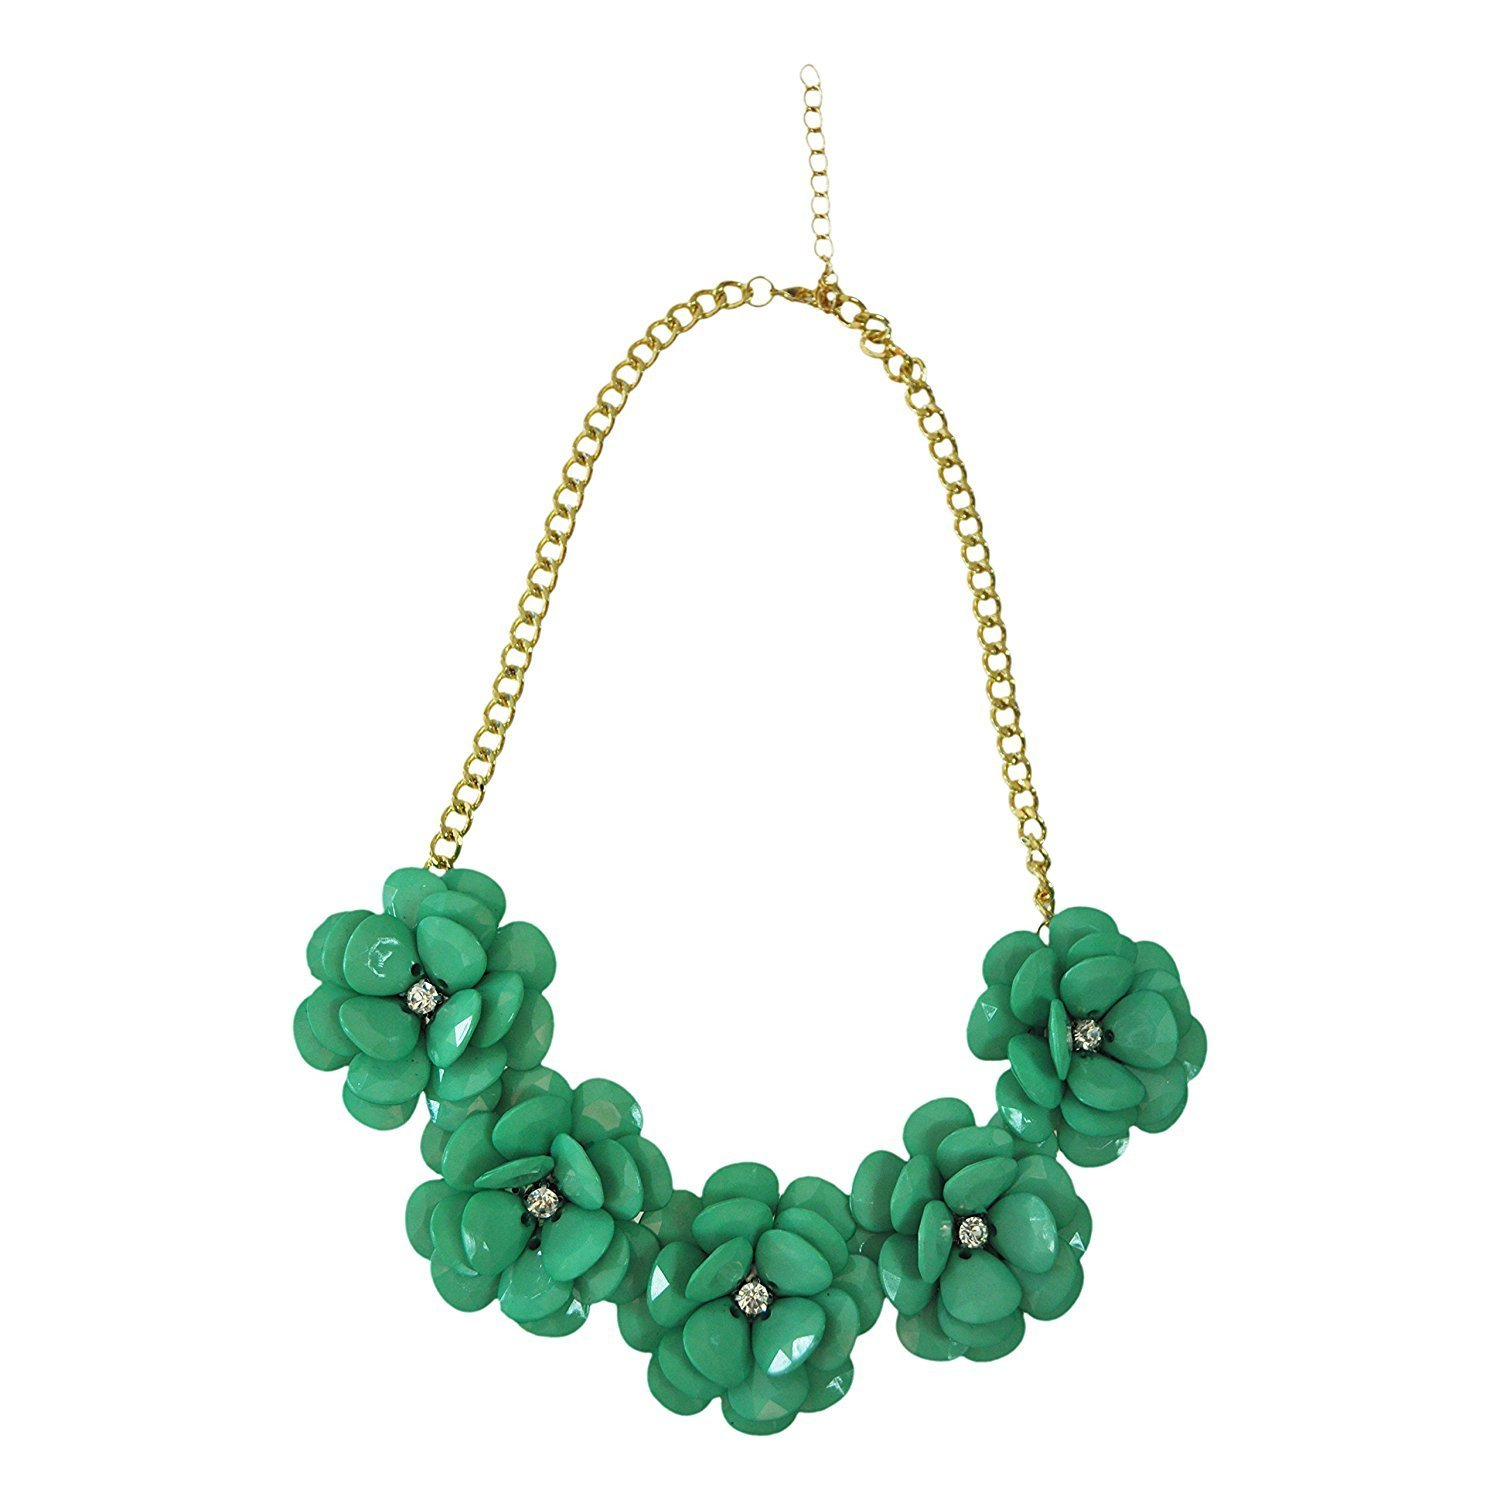 BUYEONLINE Most Fashion Jewelry Zinc Alloy With Acrylic Perfect Five Flower Necklace Necklaces & Pendants Light Green